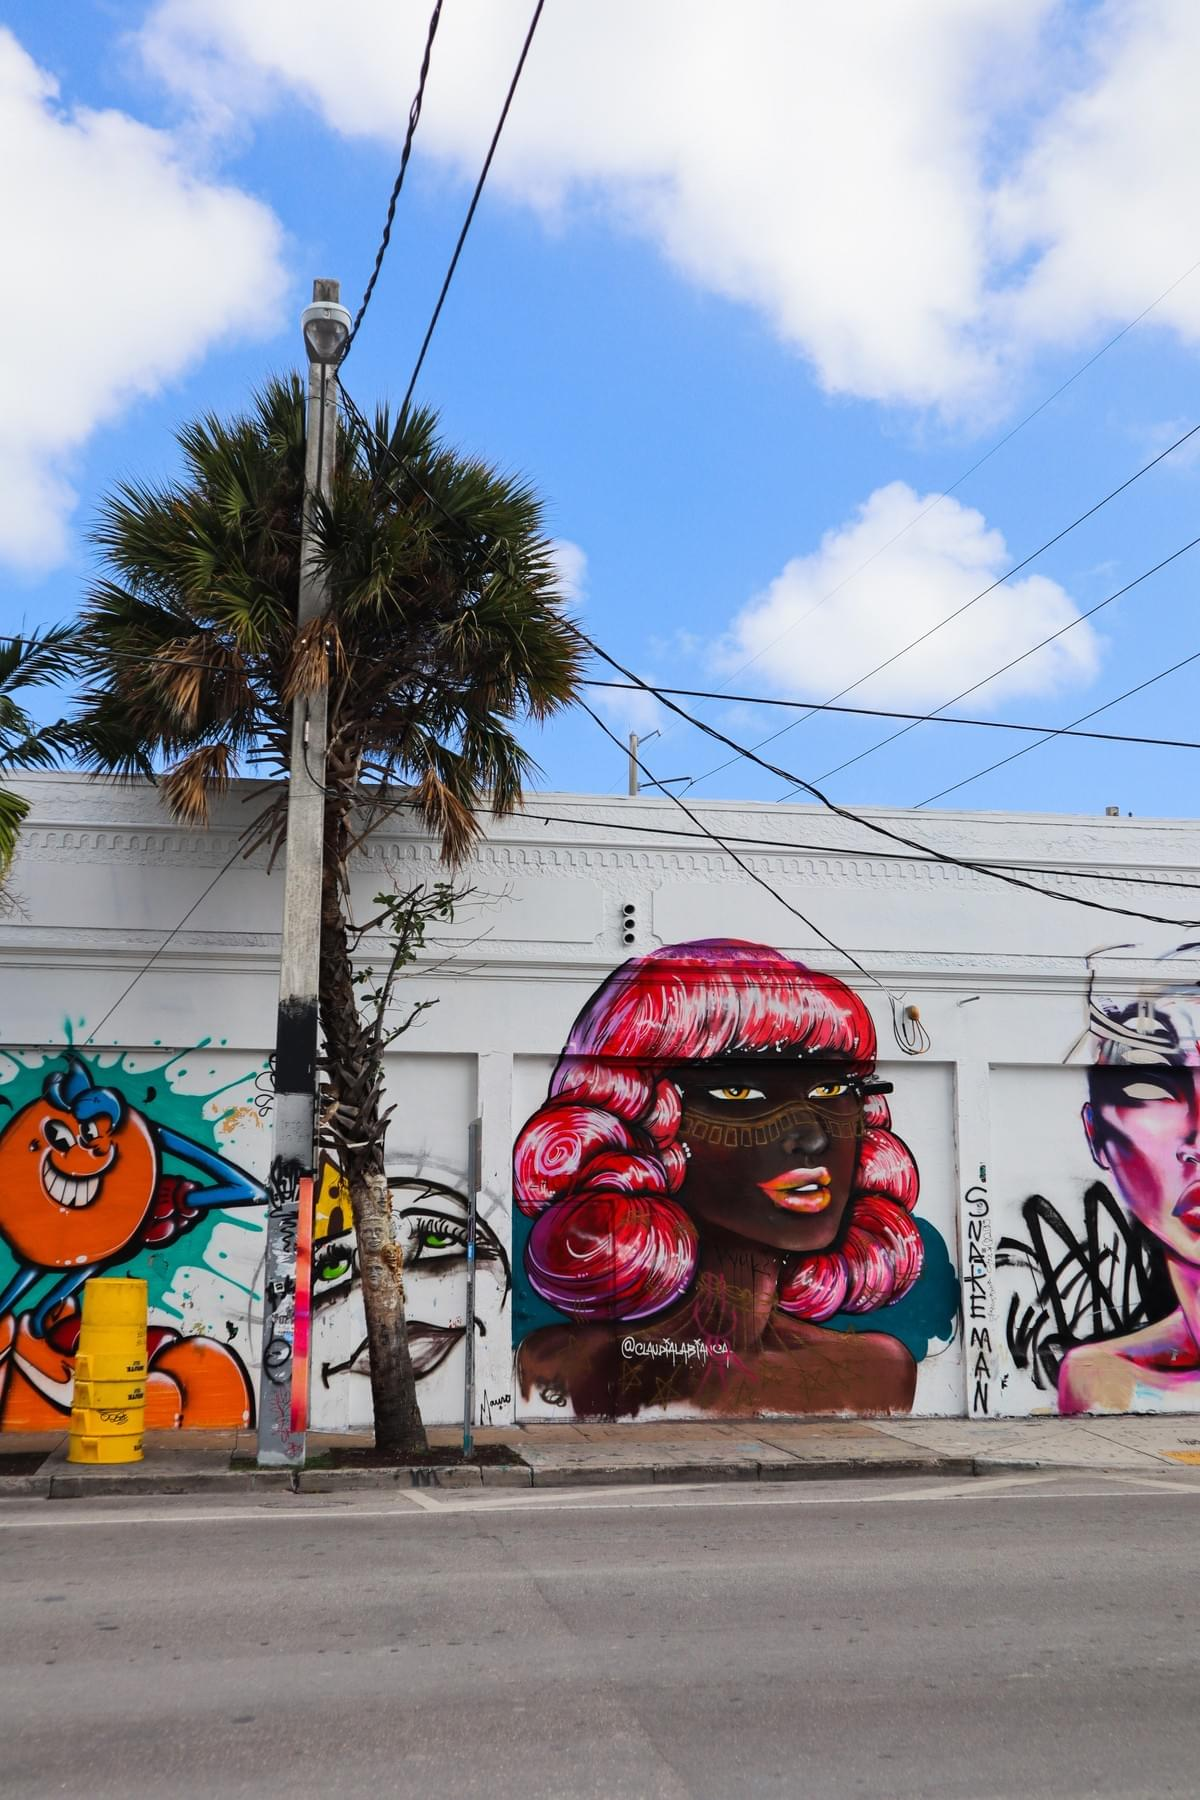 Wynwood Walls street art of black woman with pink curly hair and electricity poles